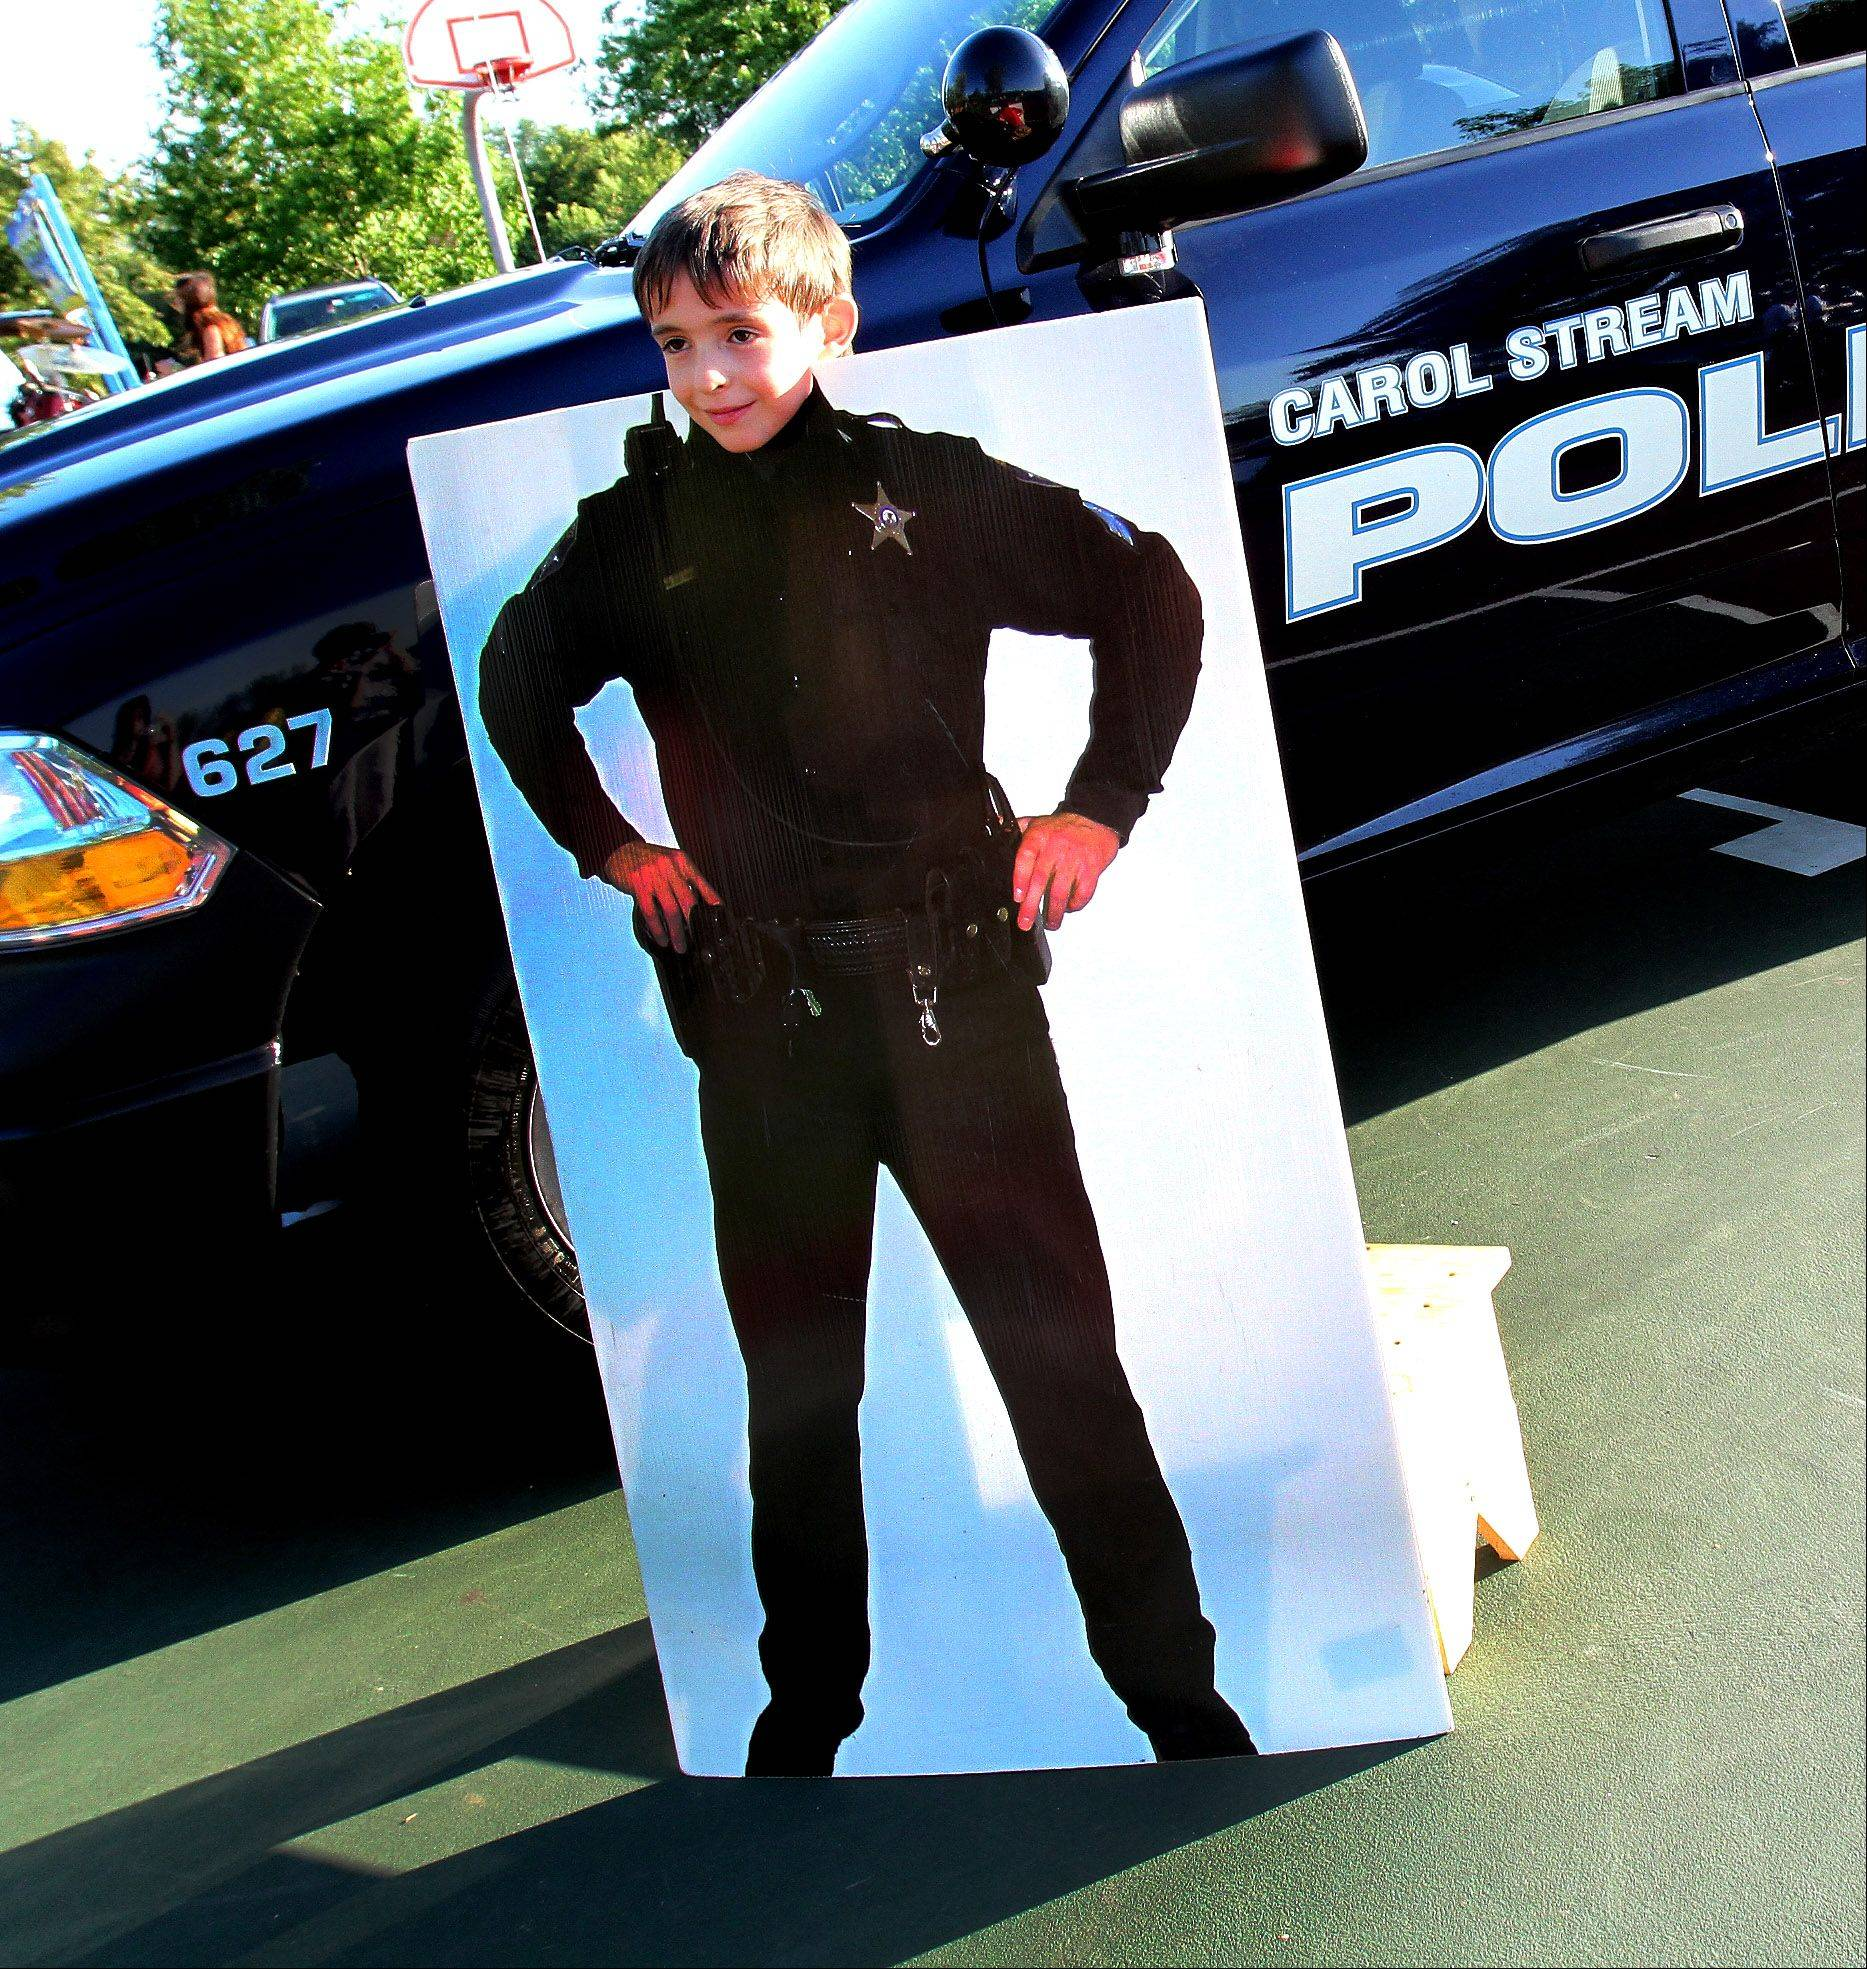 Andre Lind, 6, of Carol Stream, poses in a police officer cutout as part of the National Night Out at Community Park in Carol Stream on Tuesday.